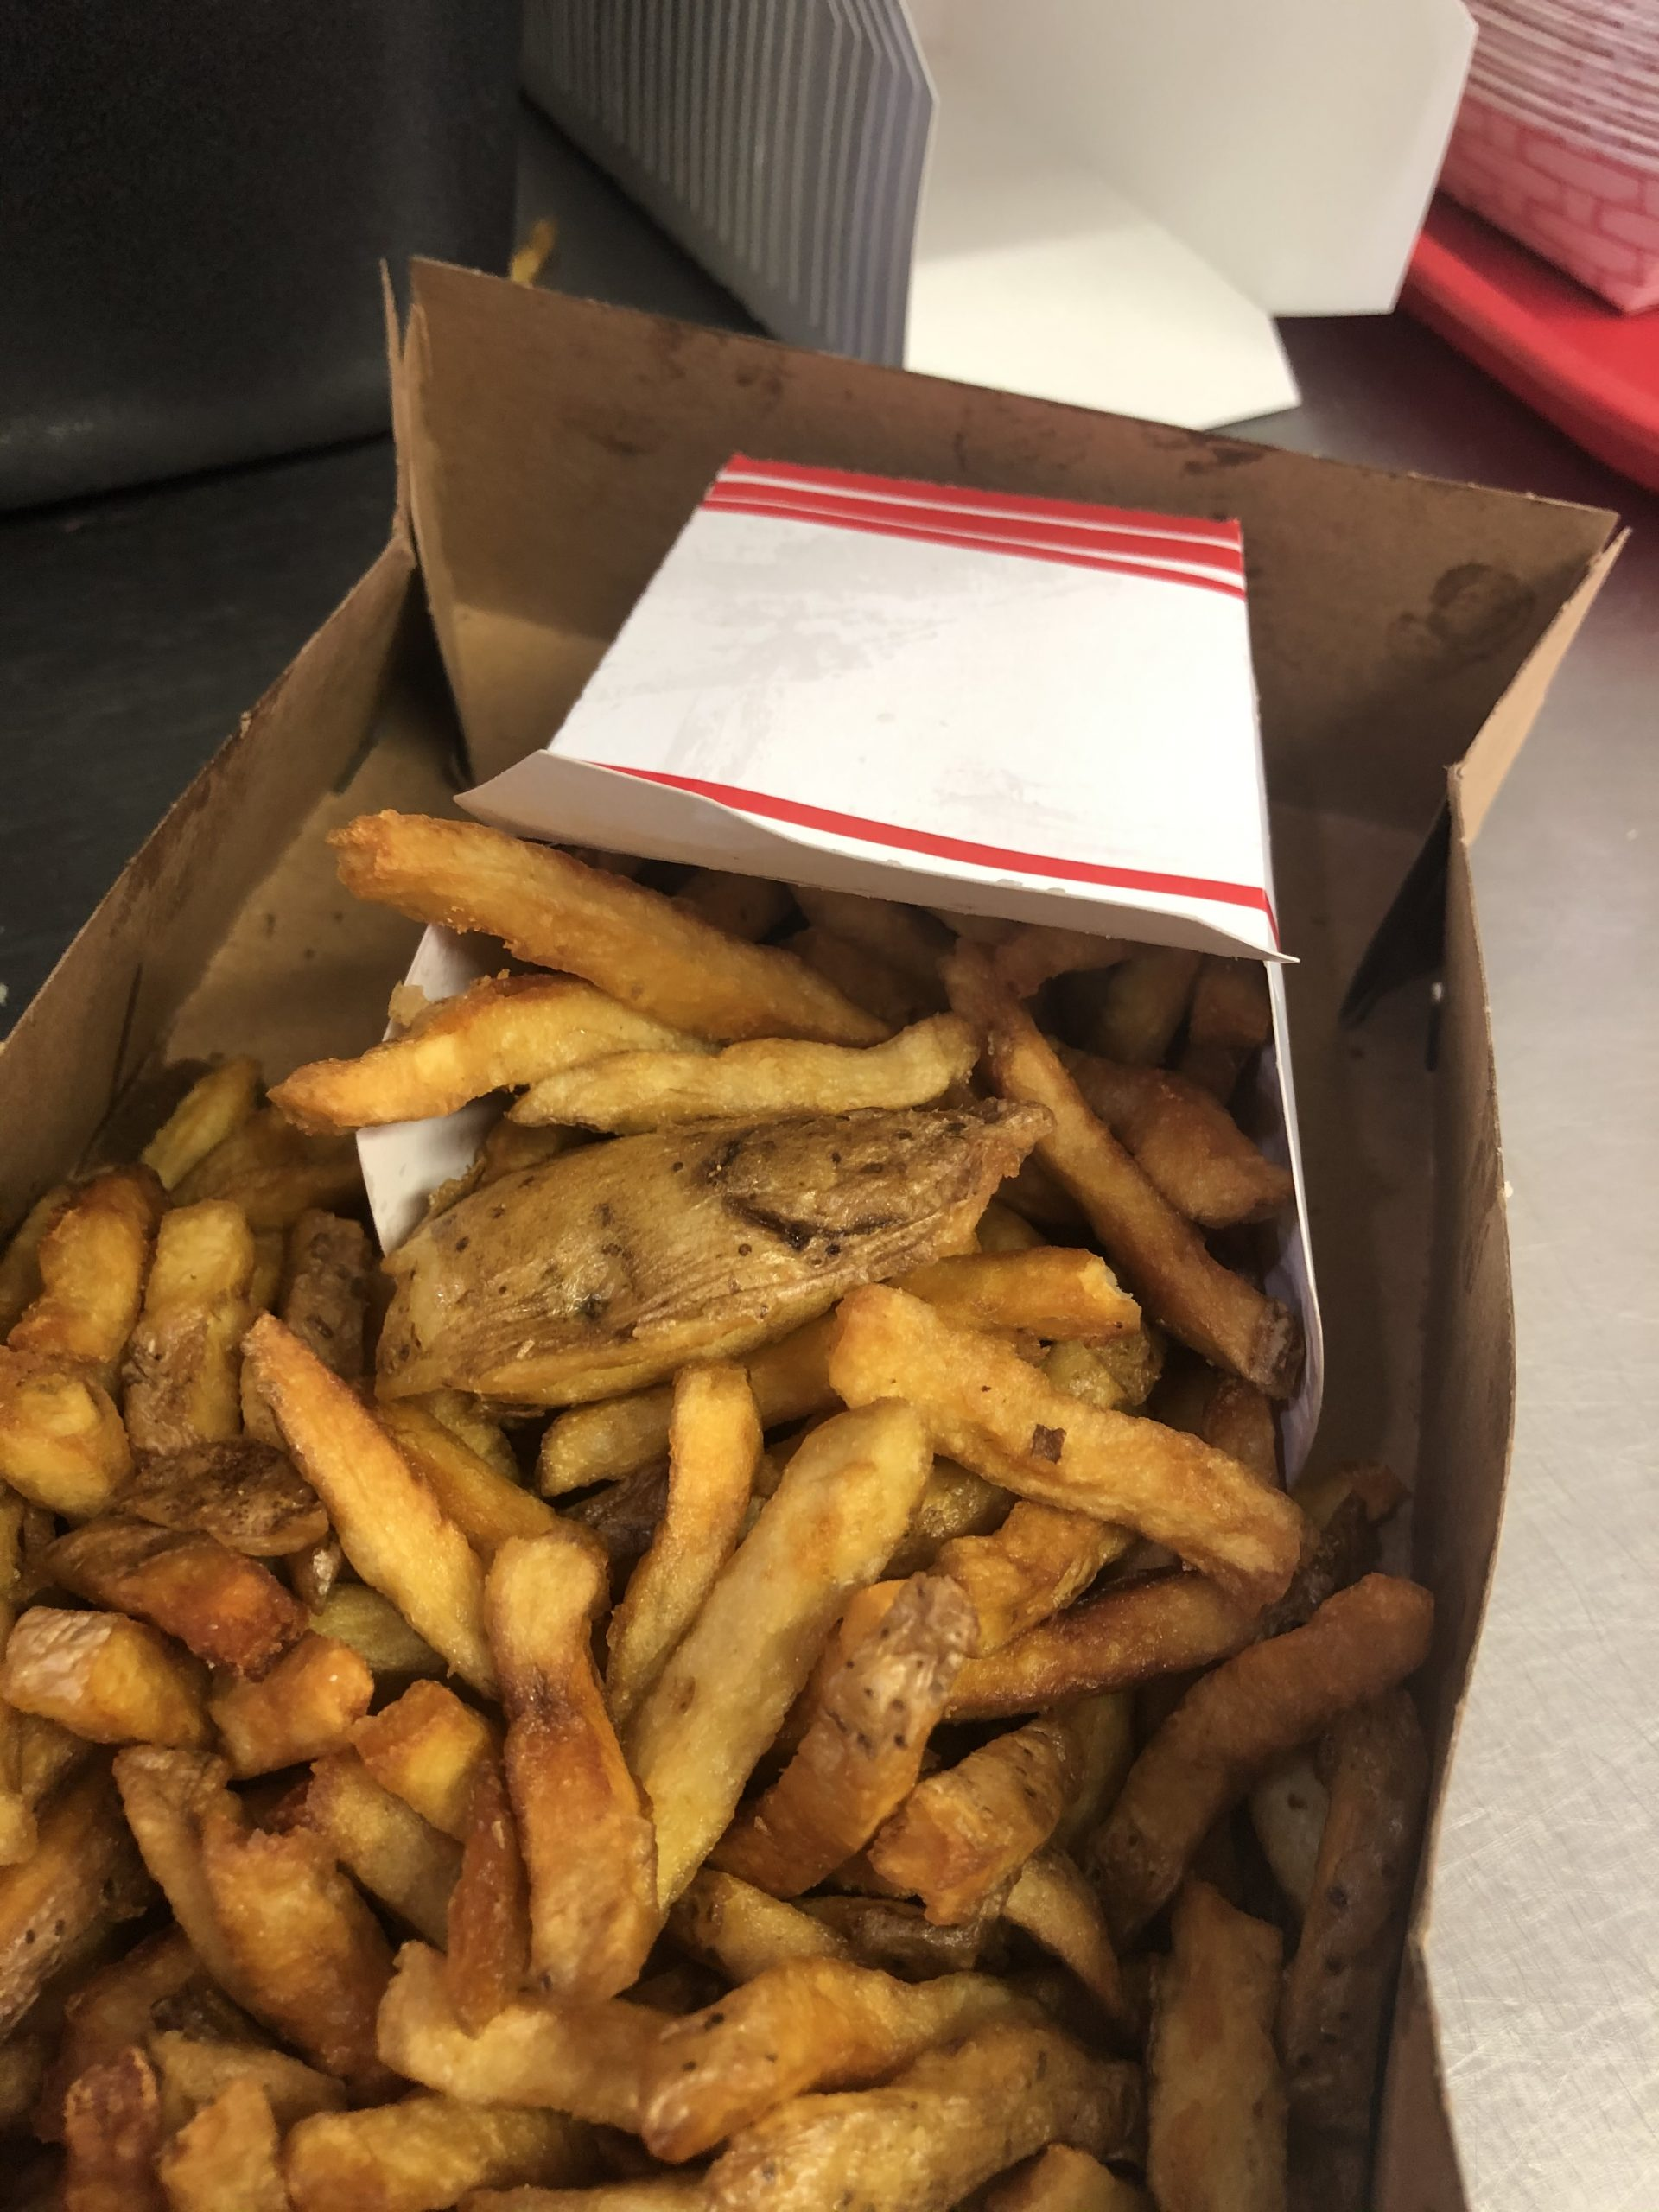 Delicious French Fries from Hoss's Dogg House in St. Albans